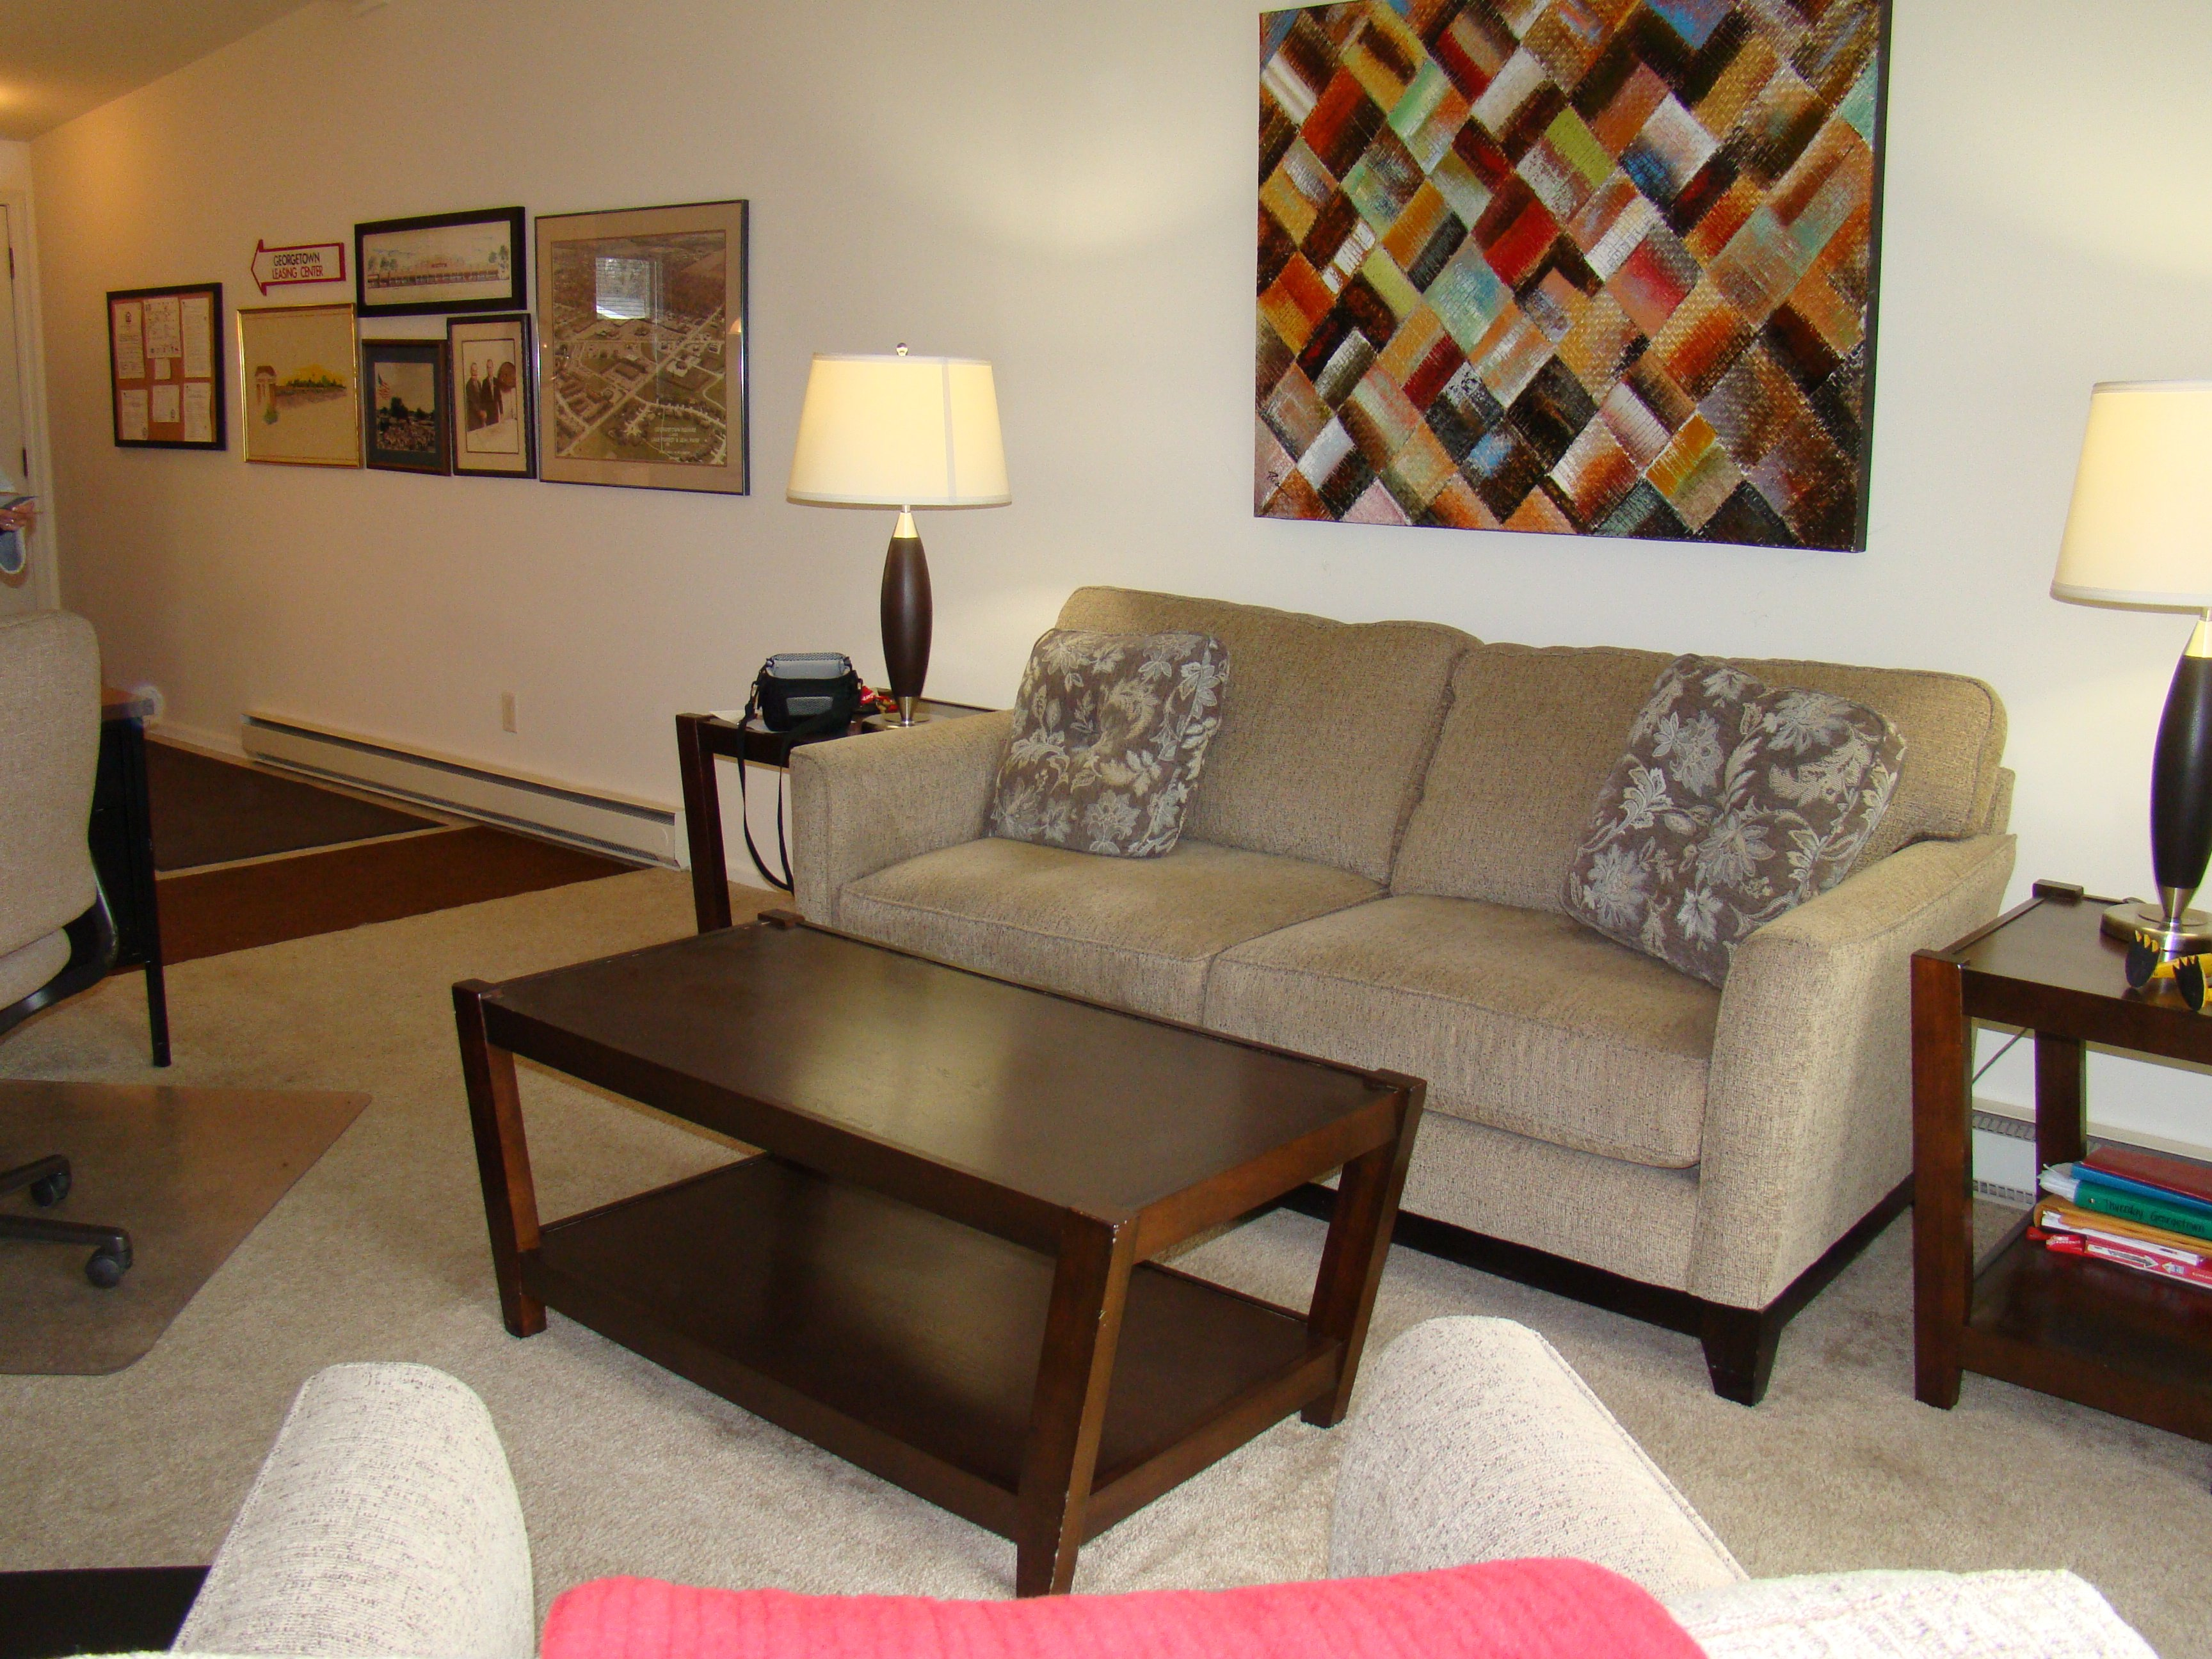 Apartment Rentals, Retirement Community | Fort Wayne, IN